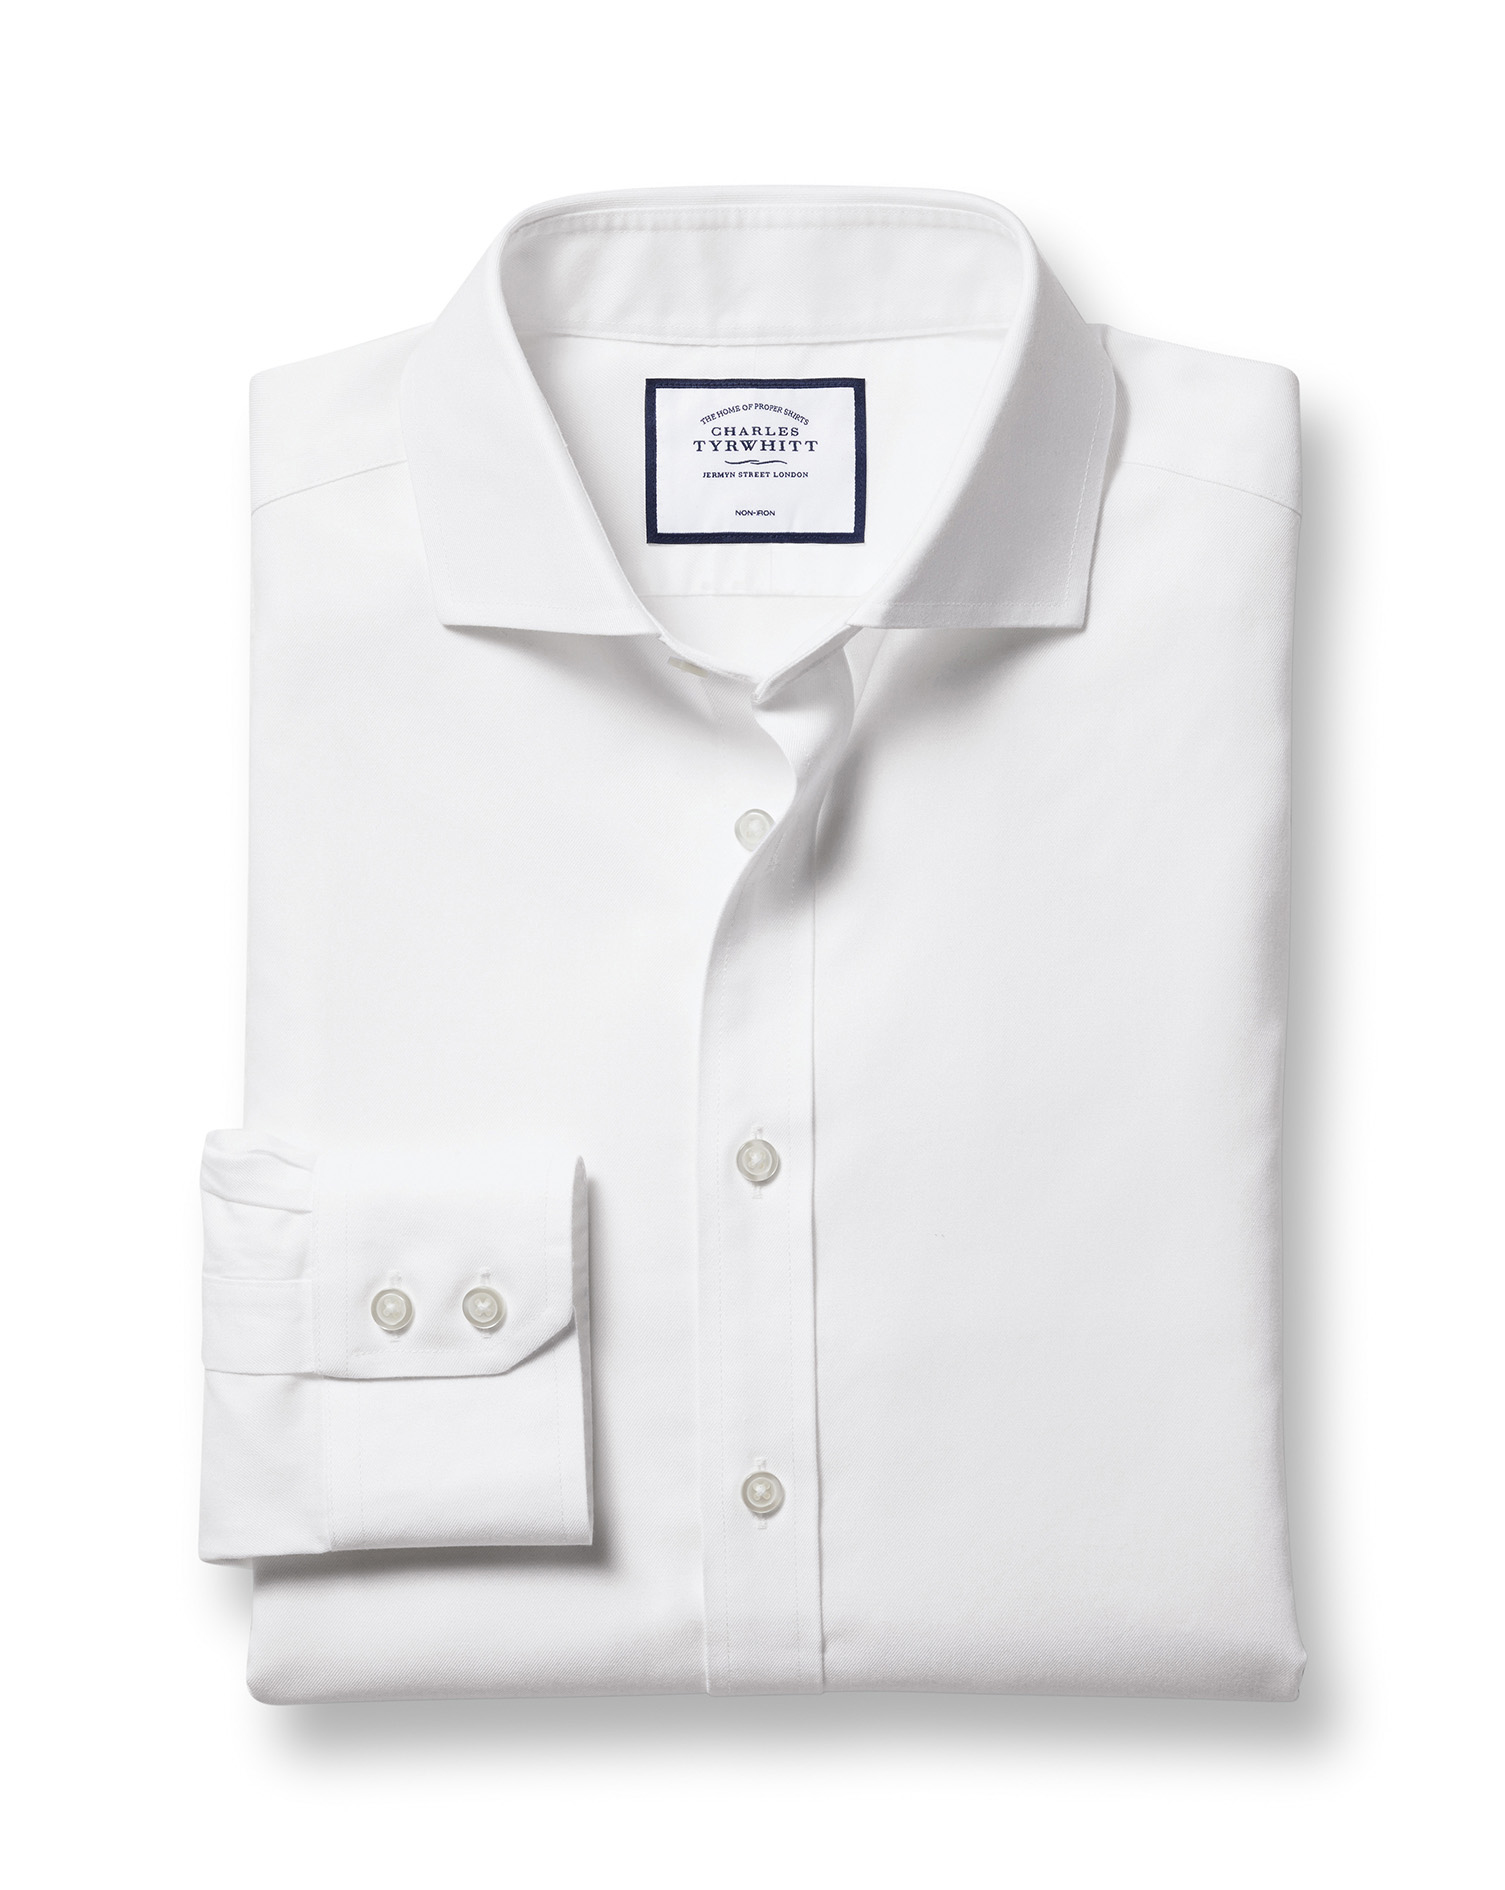 Classic Fit Cutaway Non-Iron Twill White Cotton Formal Shirt Single Cuff Size 18/37 by Charles Tyrwh